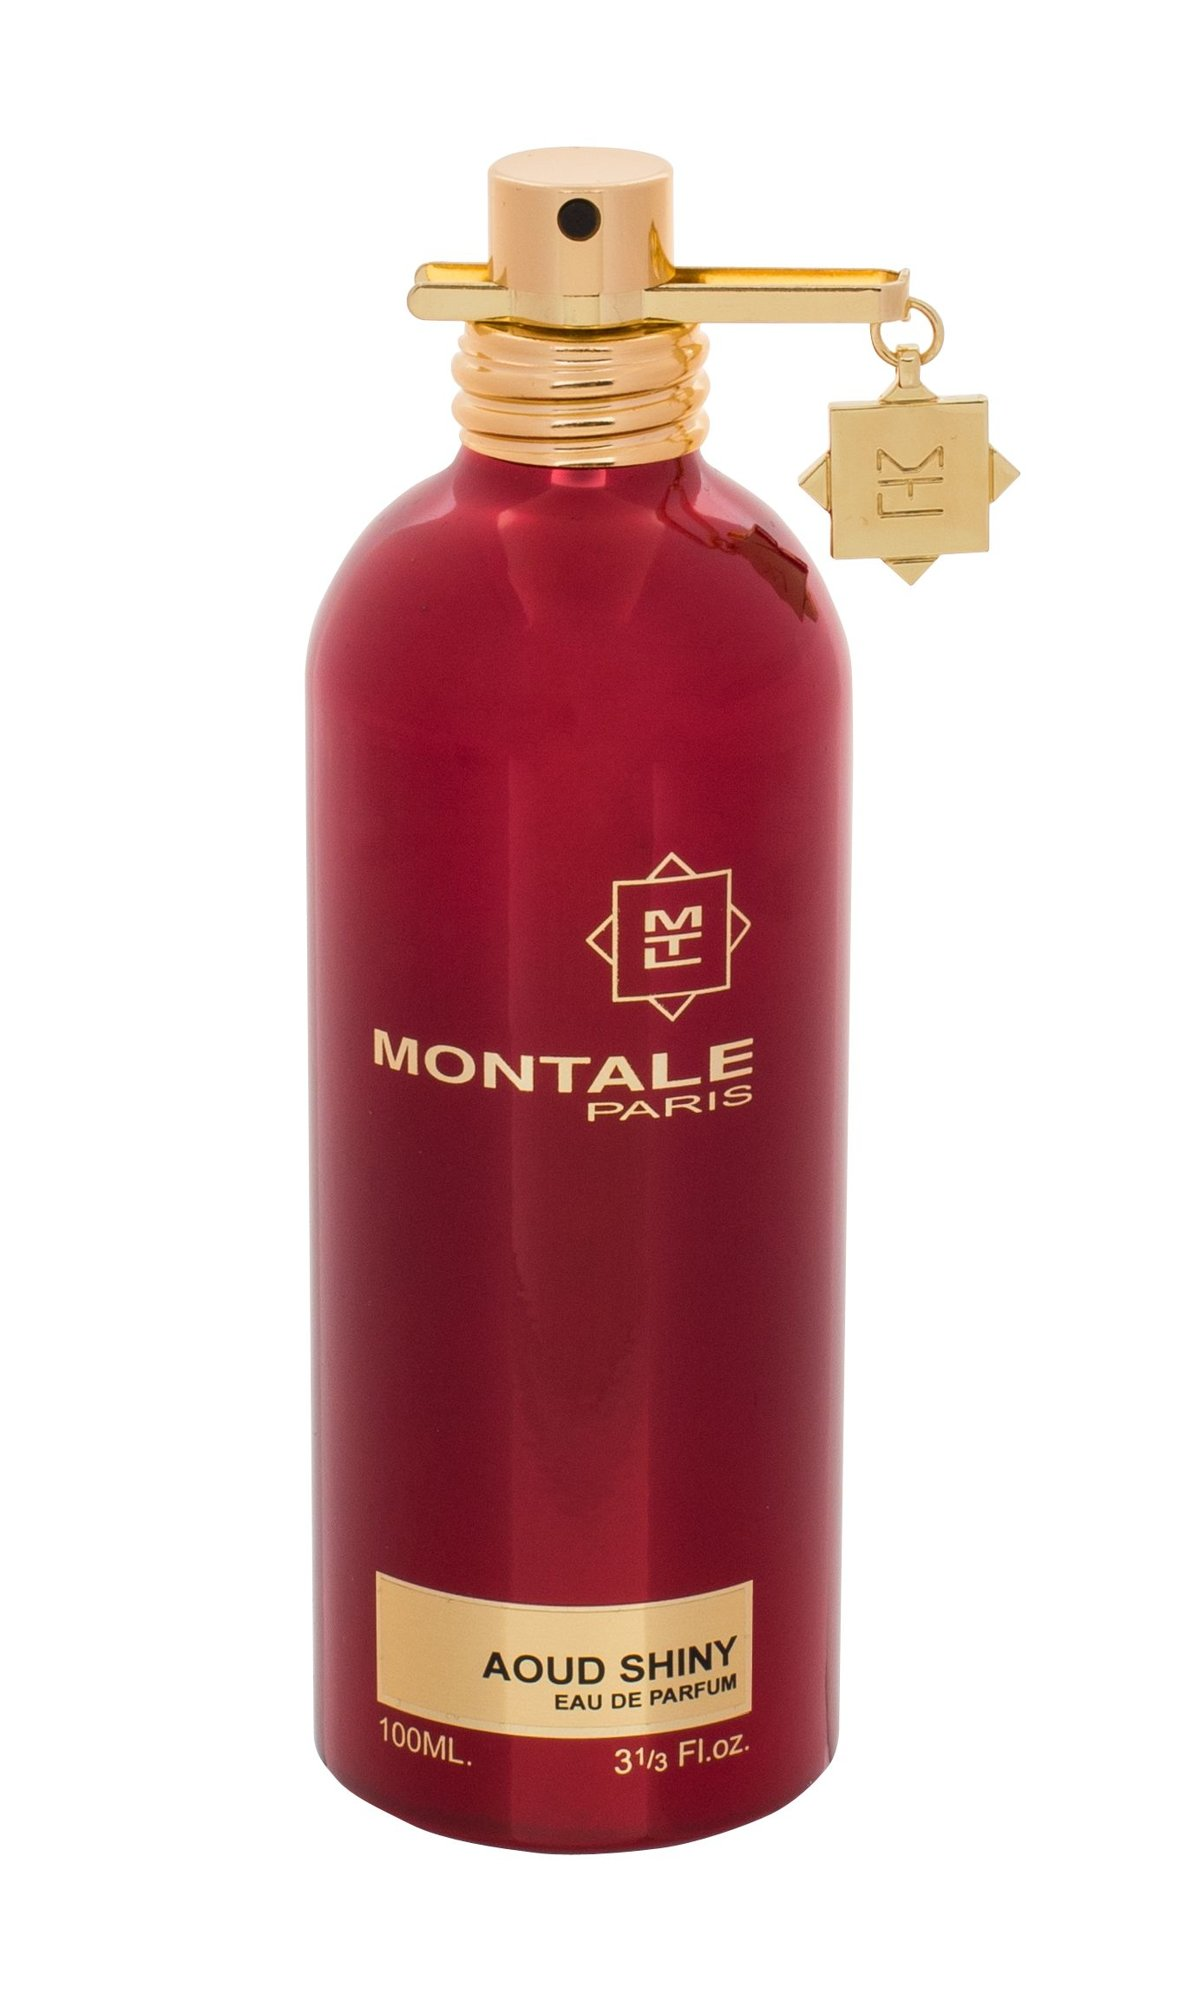 Montale Paris Aoud Shiny Eau de Parfum 100ml